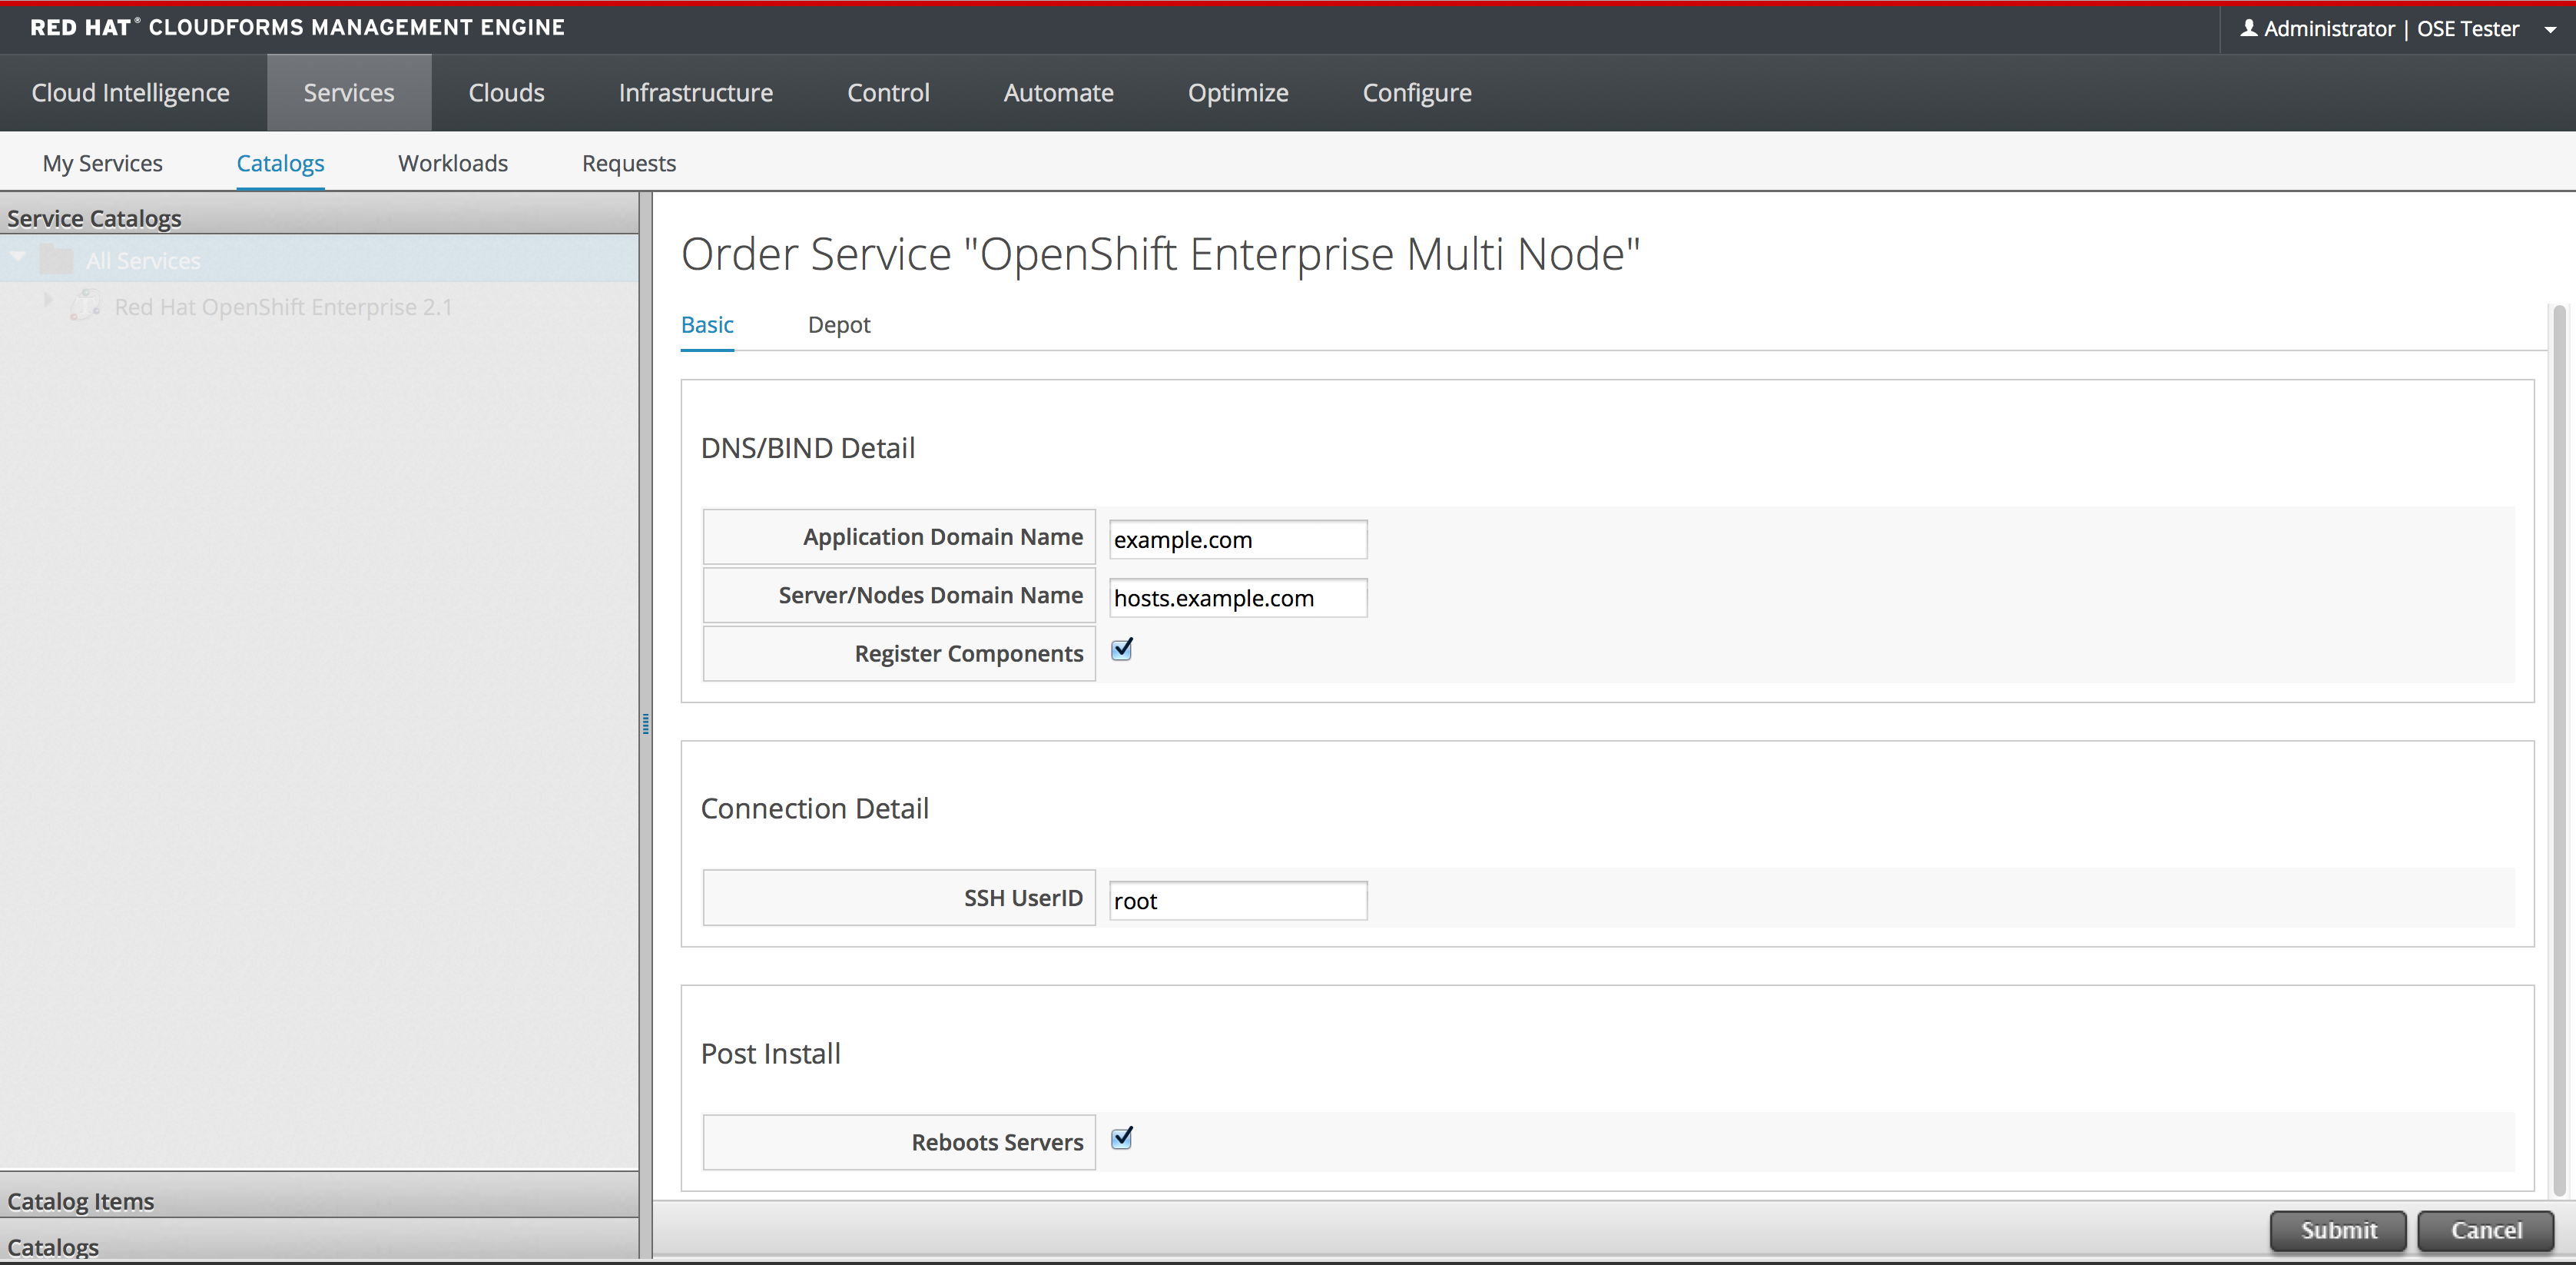 Red Hat CloudForms 3.1 Management Engine 5.3 O penshift Ent erprise Deployment G uide 2. Select the catalog item. This example uses O penshi ft Enterpri se Mul ti No d e. Click O rd er. 3. Enter the basic details for the service as required.